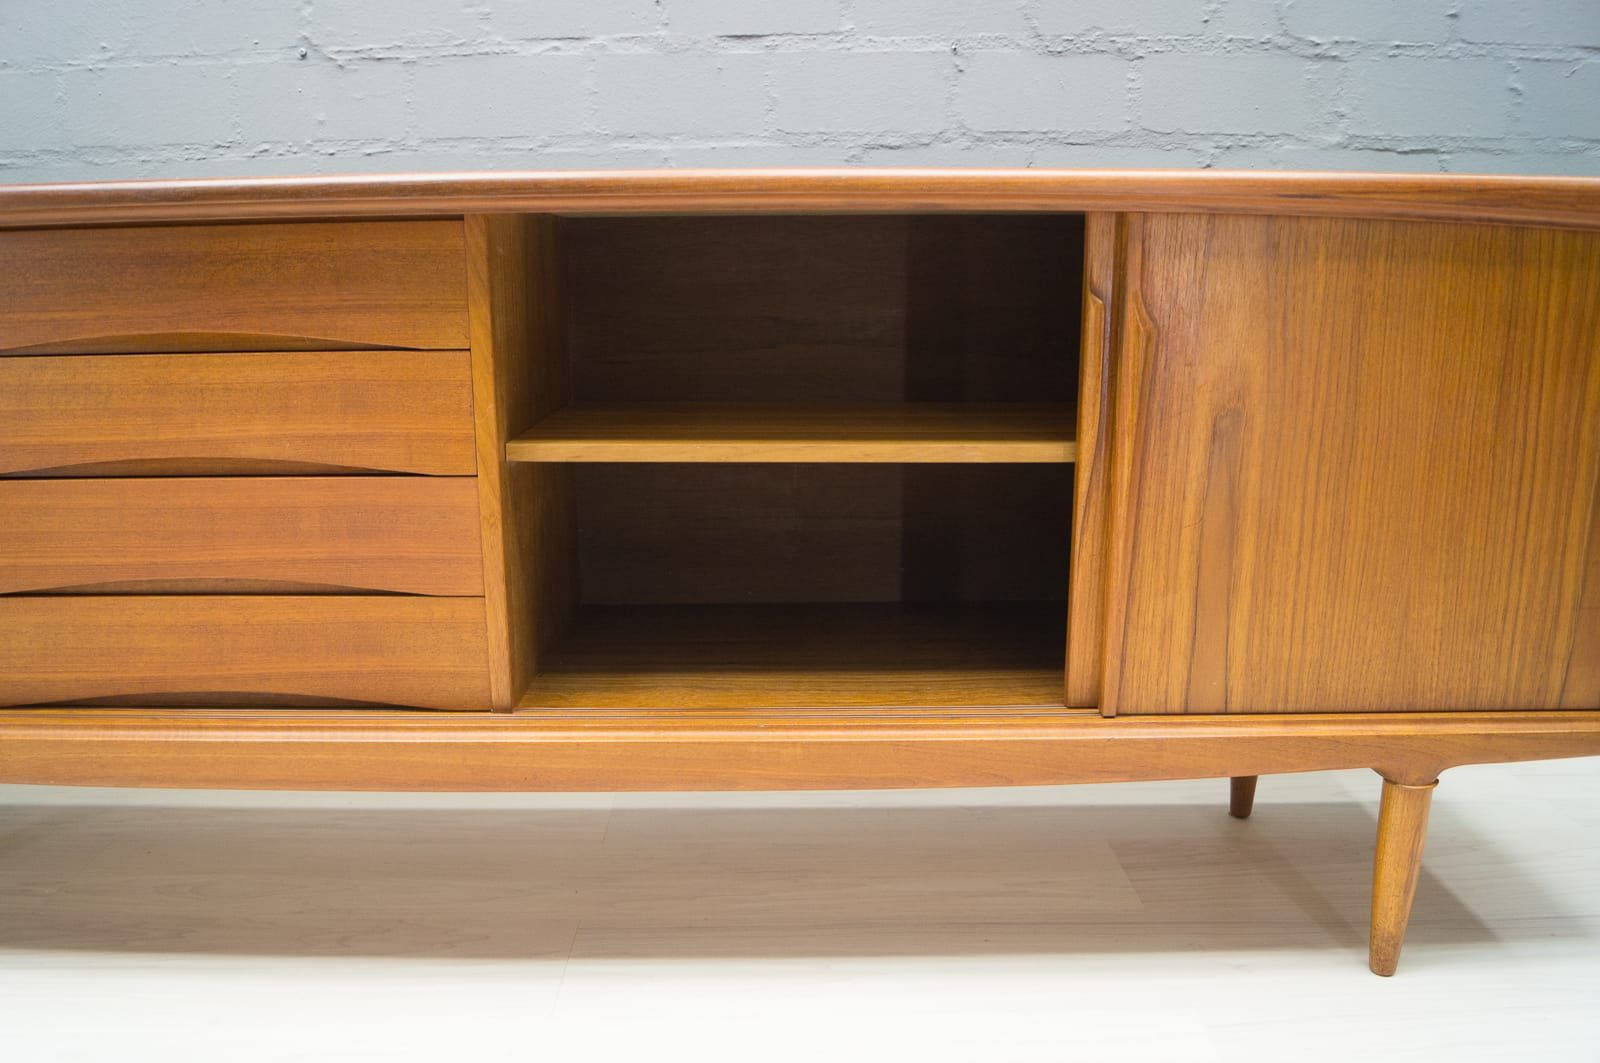 Langes teak sideboard von axel christensen odder 1960er for Langes sideboard